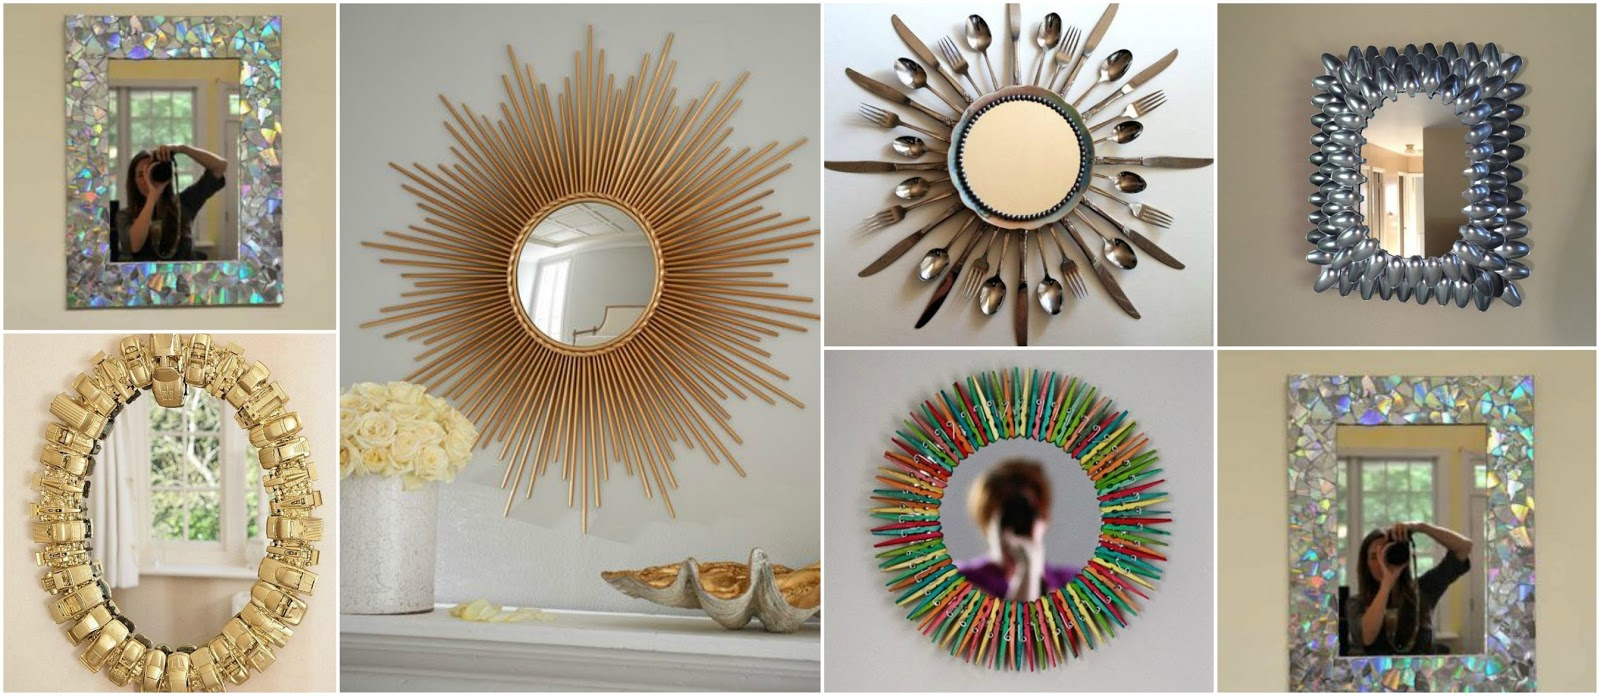 11 ideas originales para decorar espejos en casa lodijoella for Espejos circulares para decorar